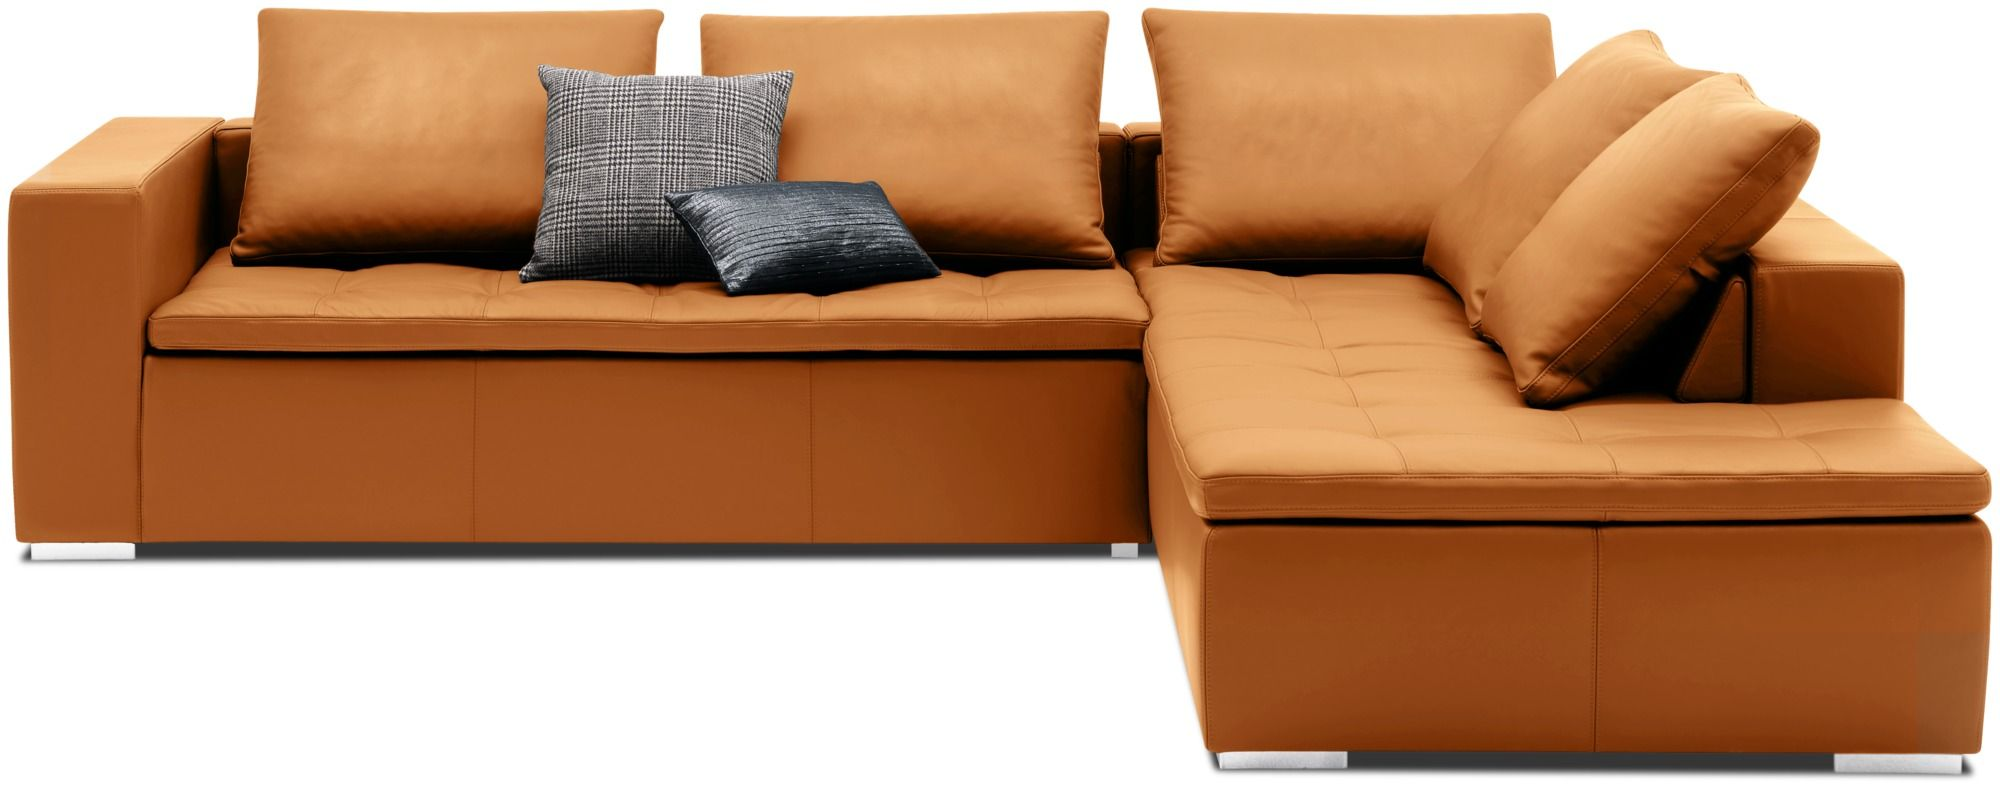 Mezzo sofa as seen in The Call - designed for time-outs | The Call ...